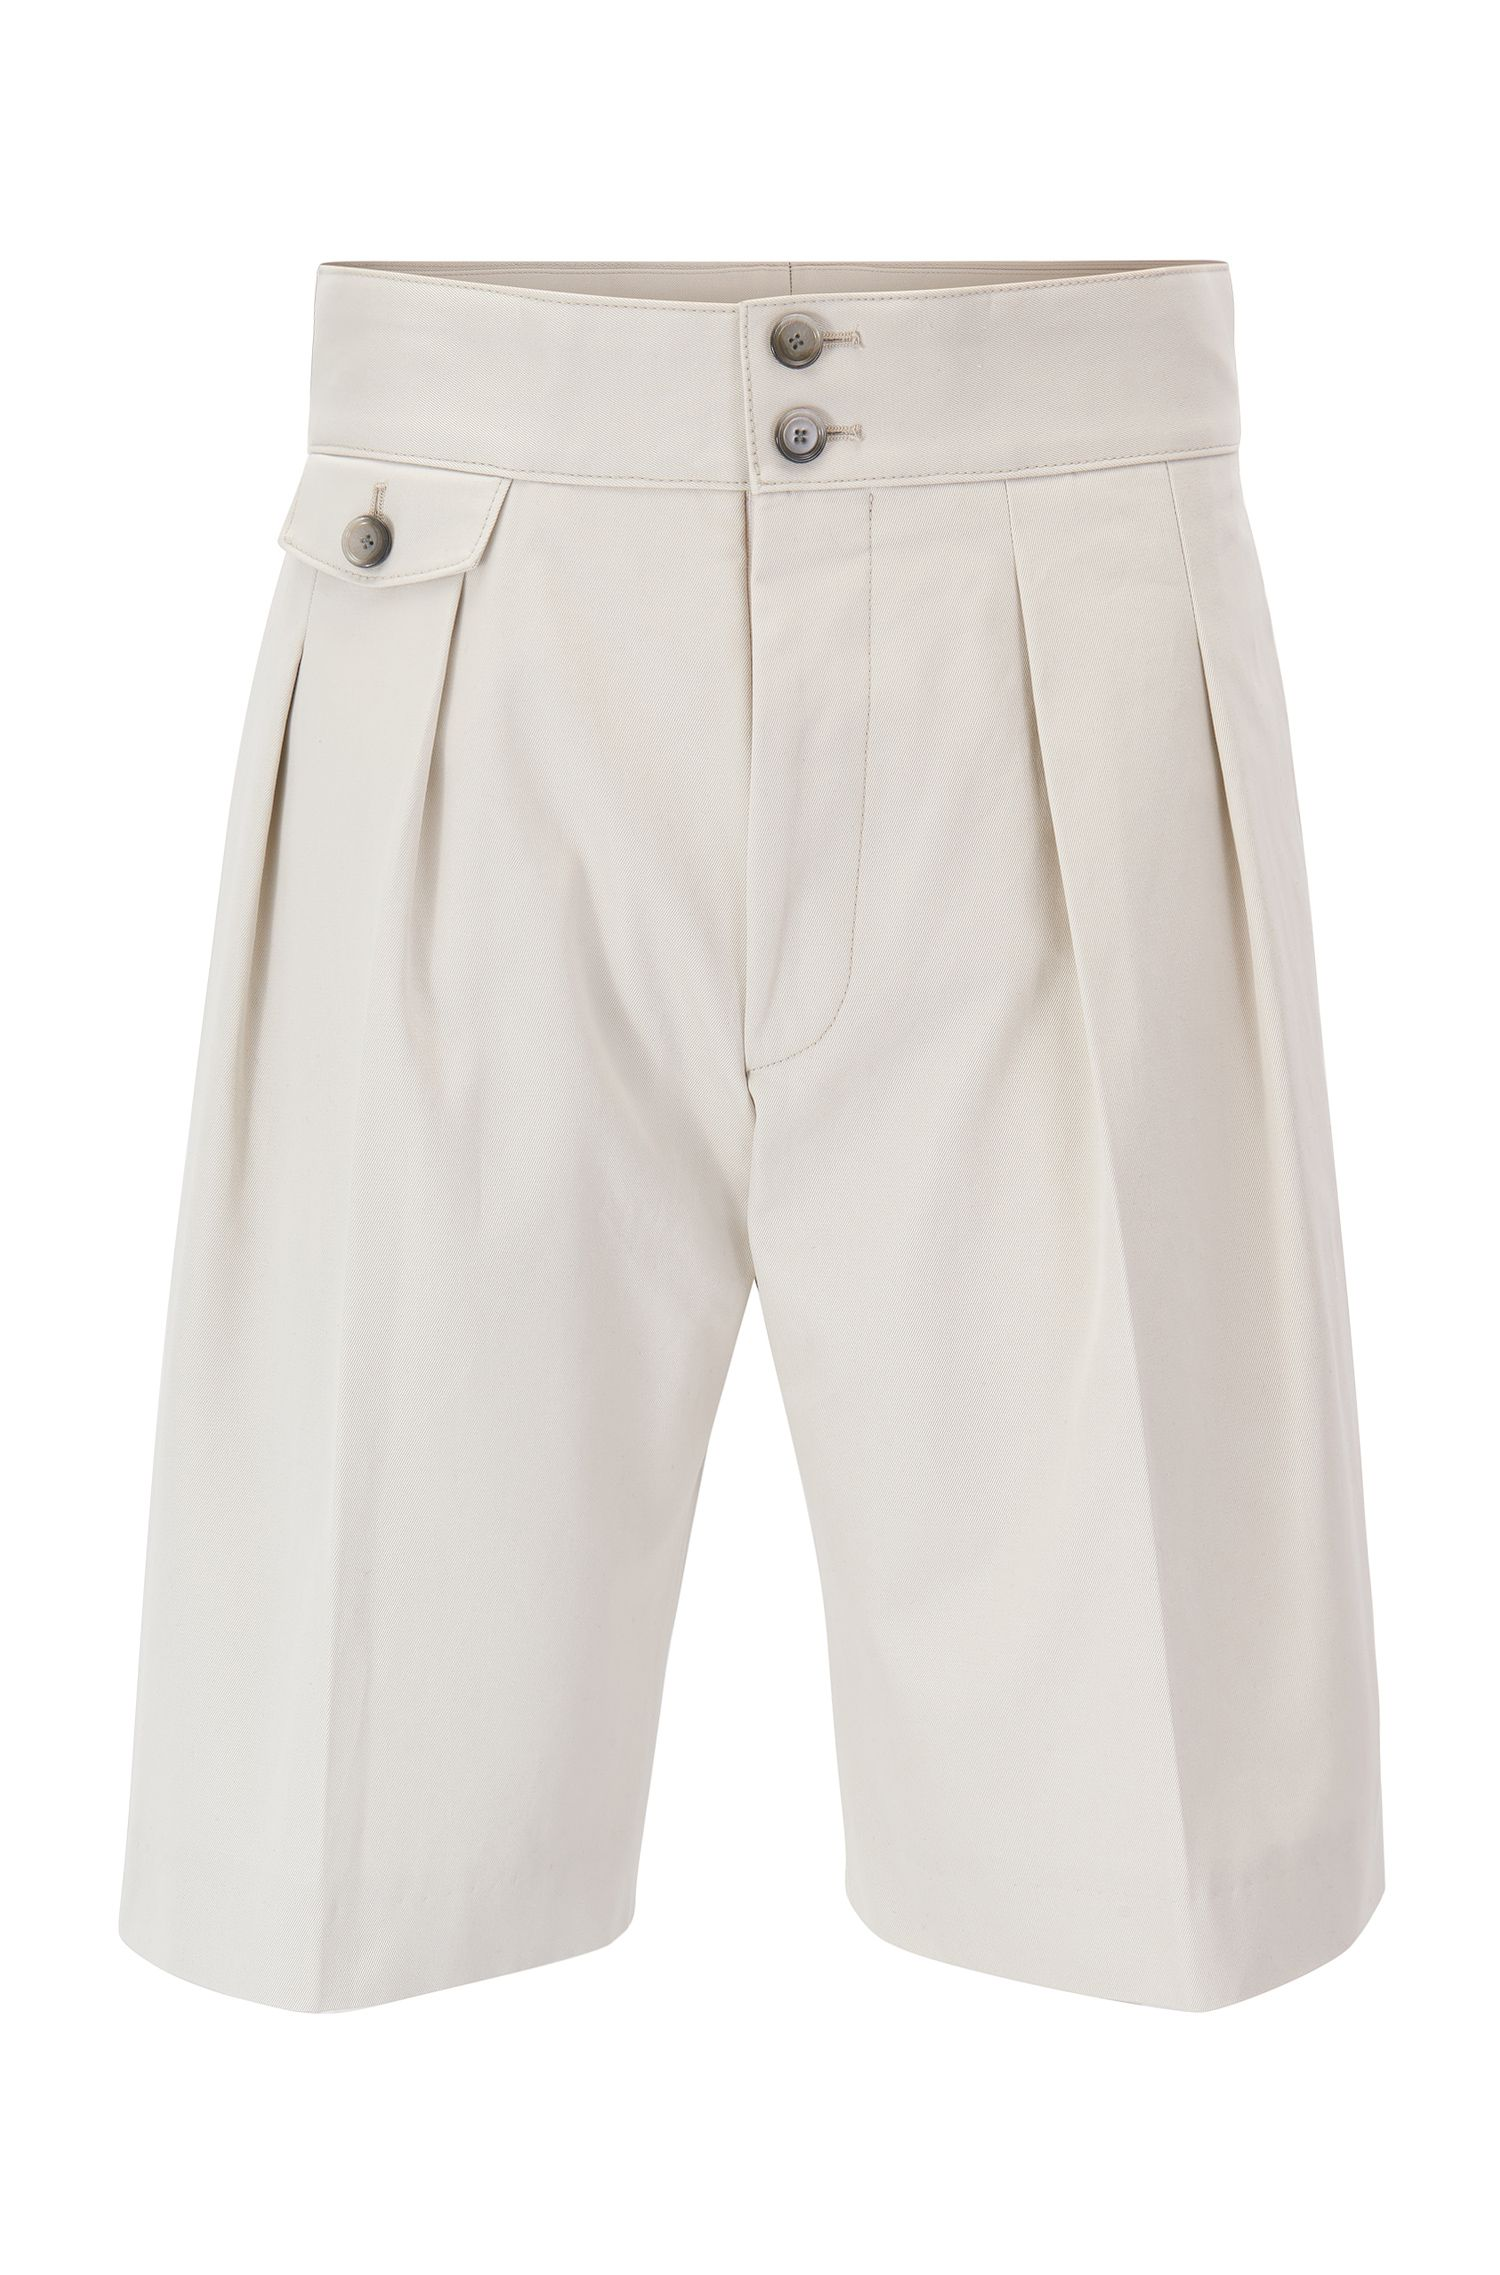 High Waisted Pleated Shorts | 'Anker', Natural